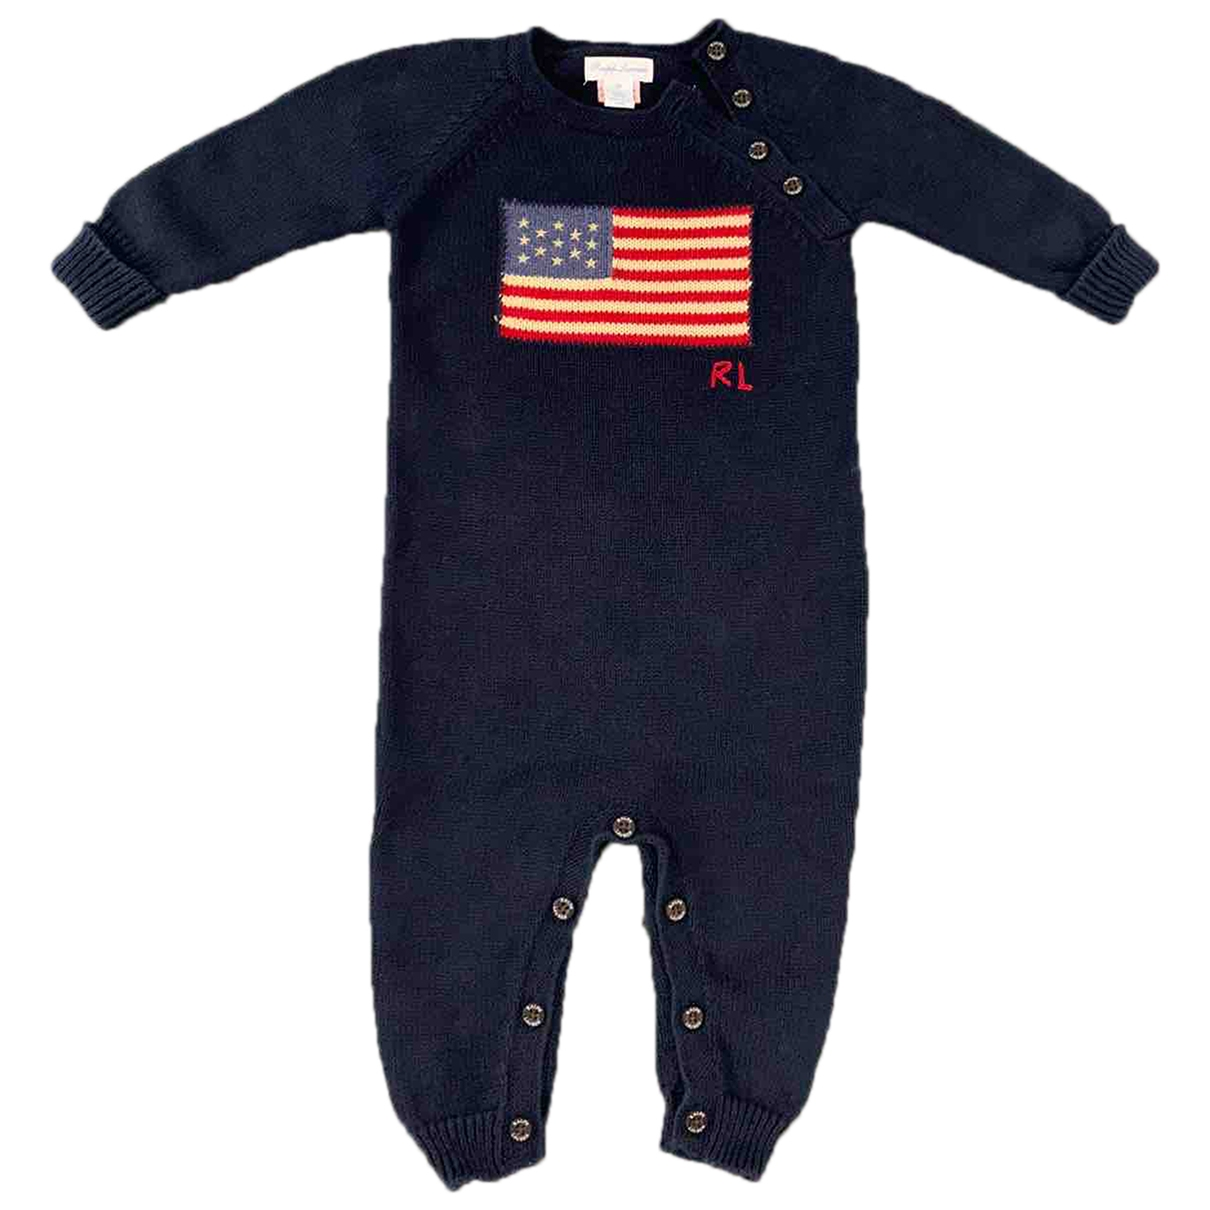 Ralph Lauren \N Blue Cotton Outfits for Kids 9 months - up to 71cm FR